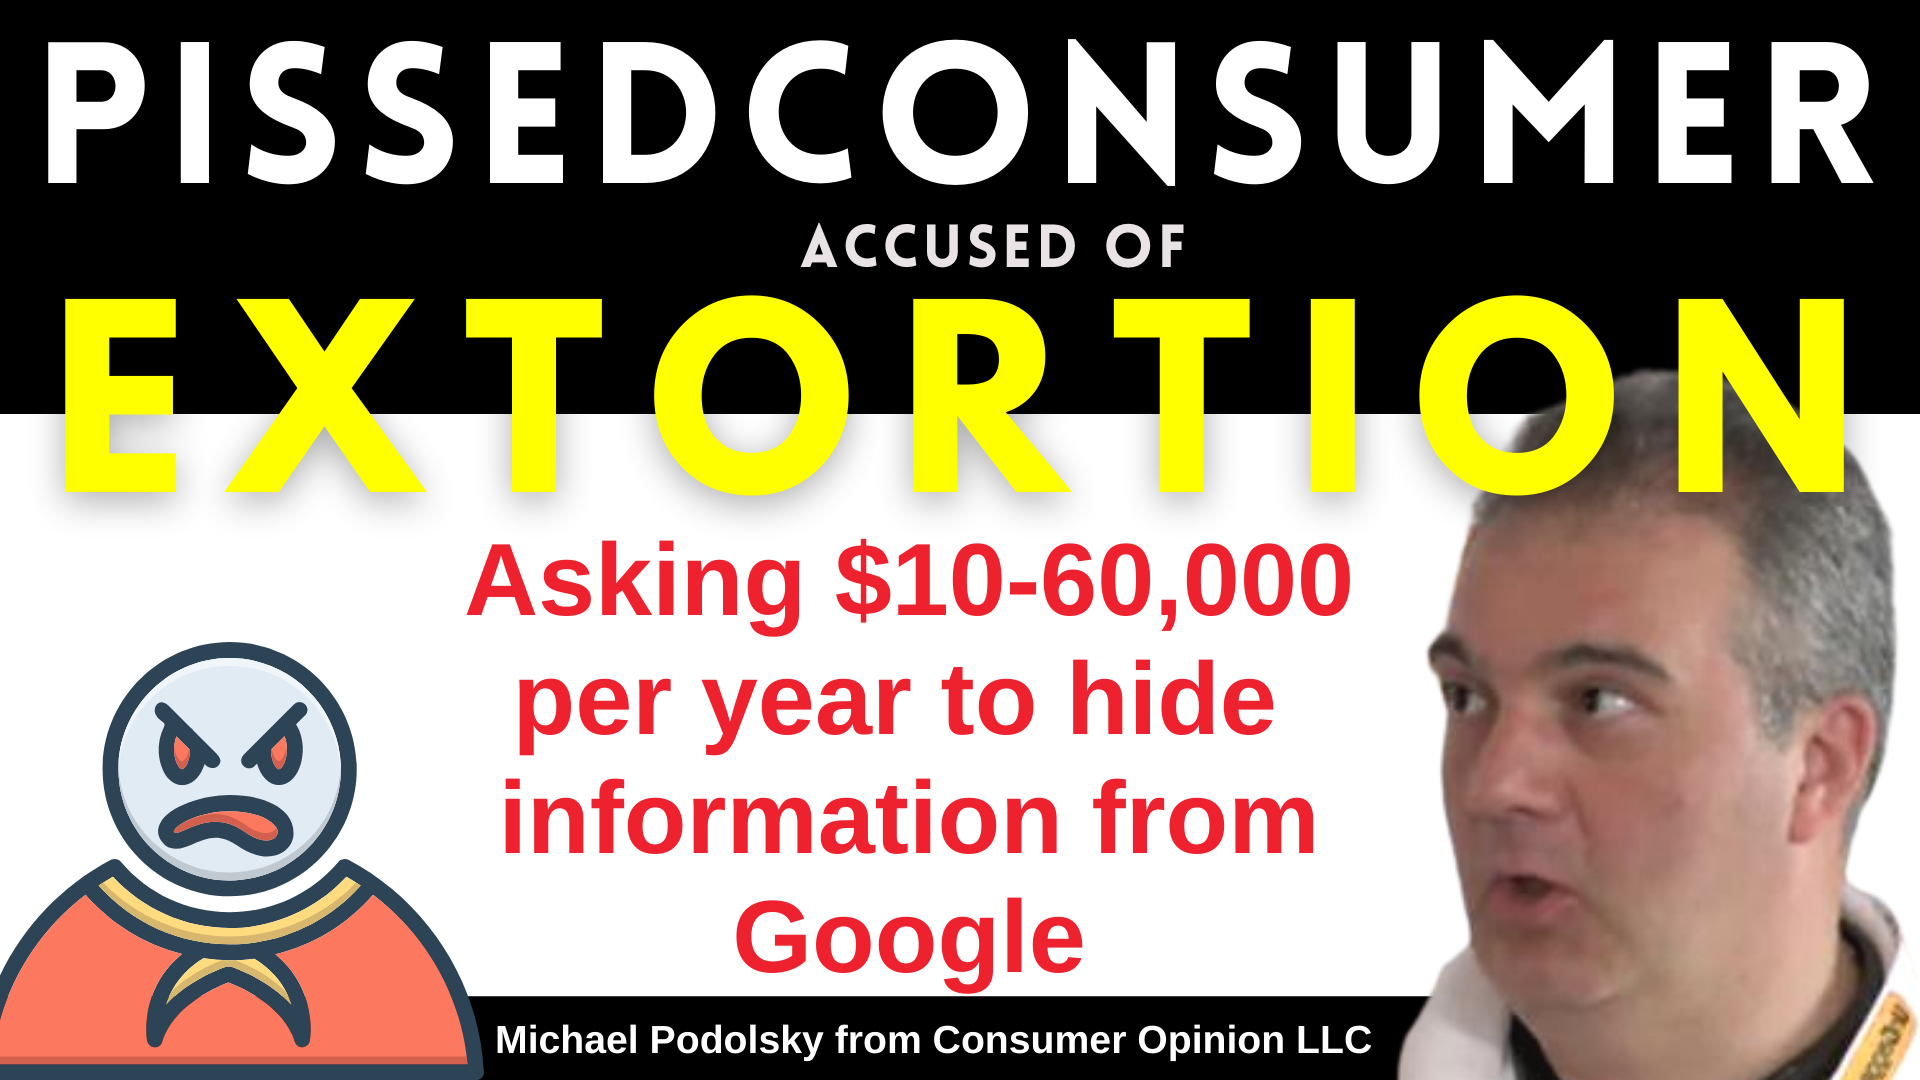 PISSEDCONSUMER Asking $10-60,000 per year to hide information from Google accused of EXTORTION of small businesses by Michael Podolsky from consumer Opinion